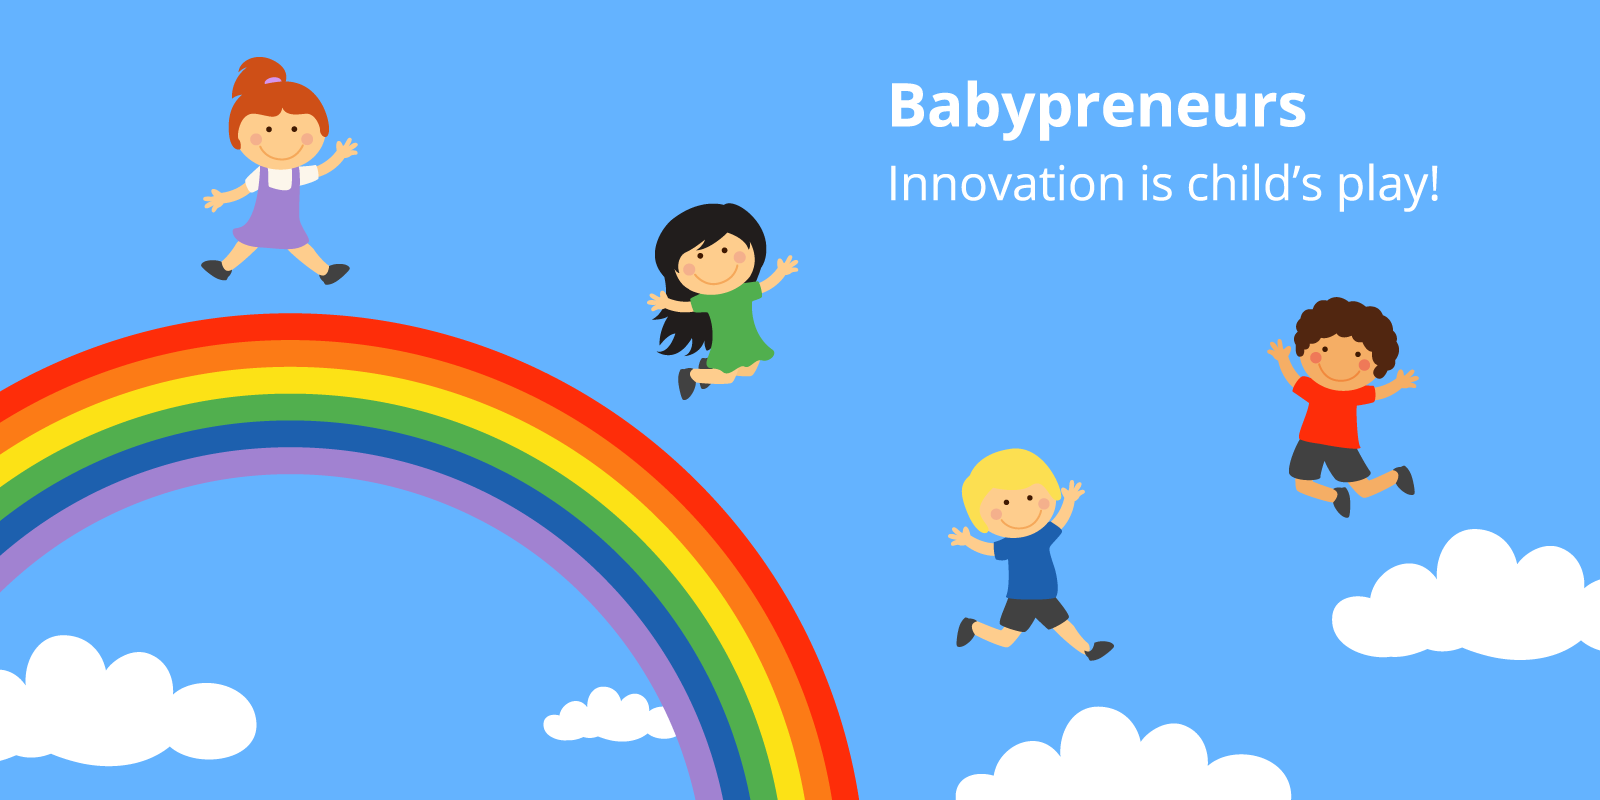 Babypreneurs-innovation